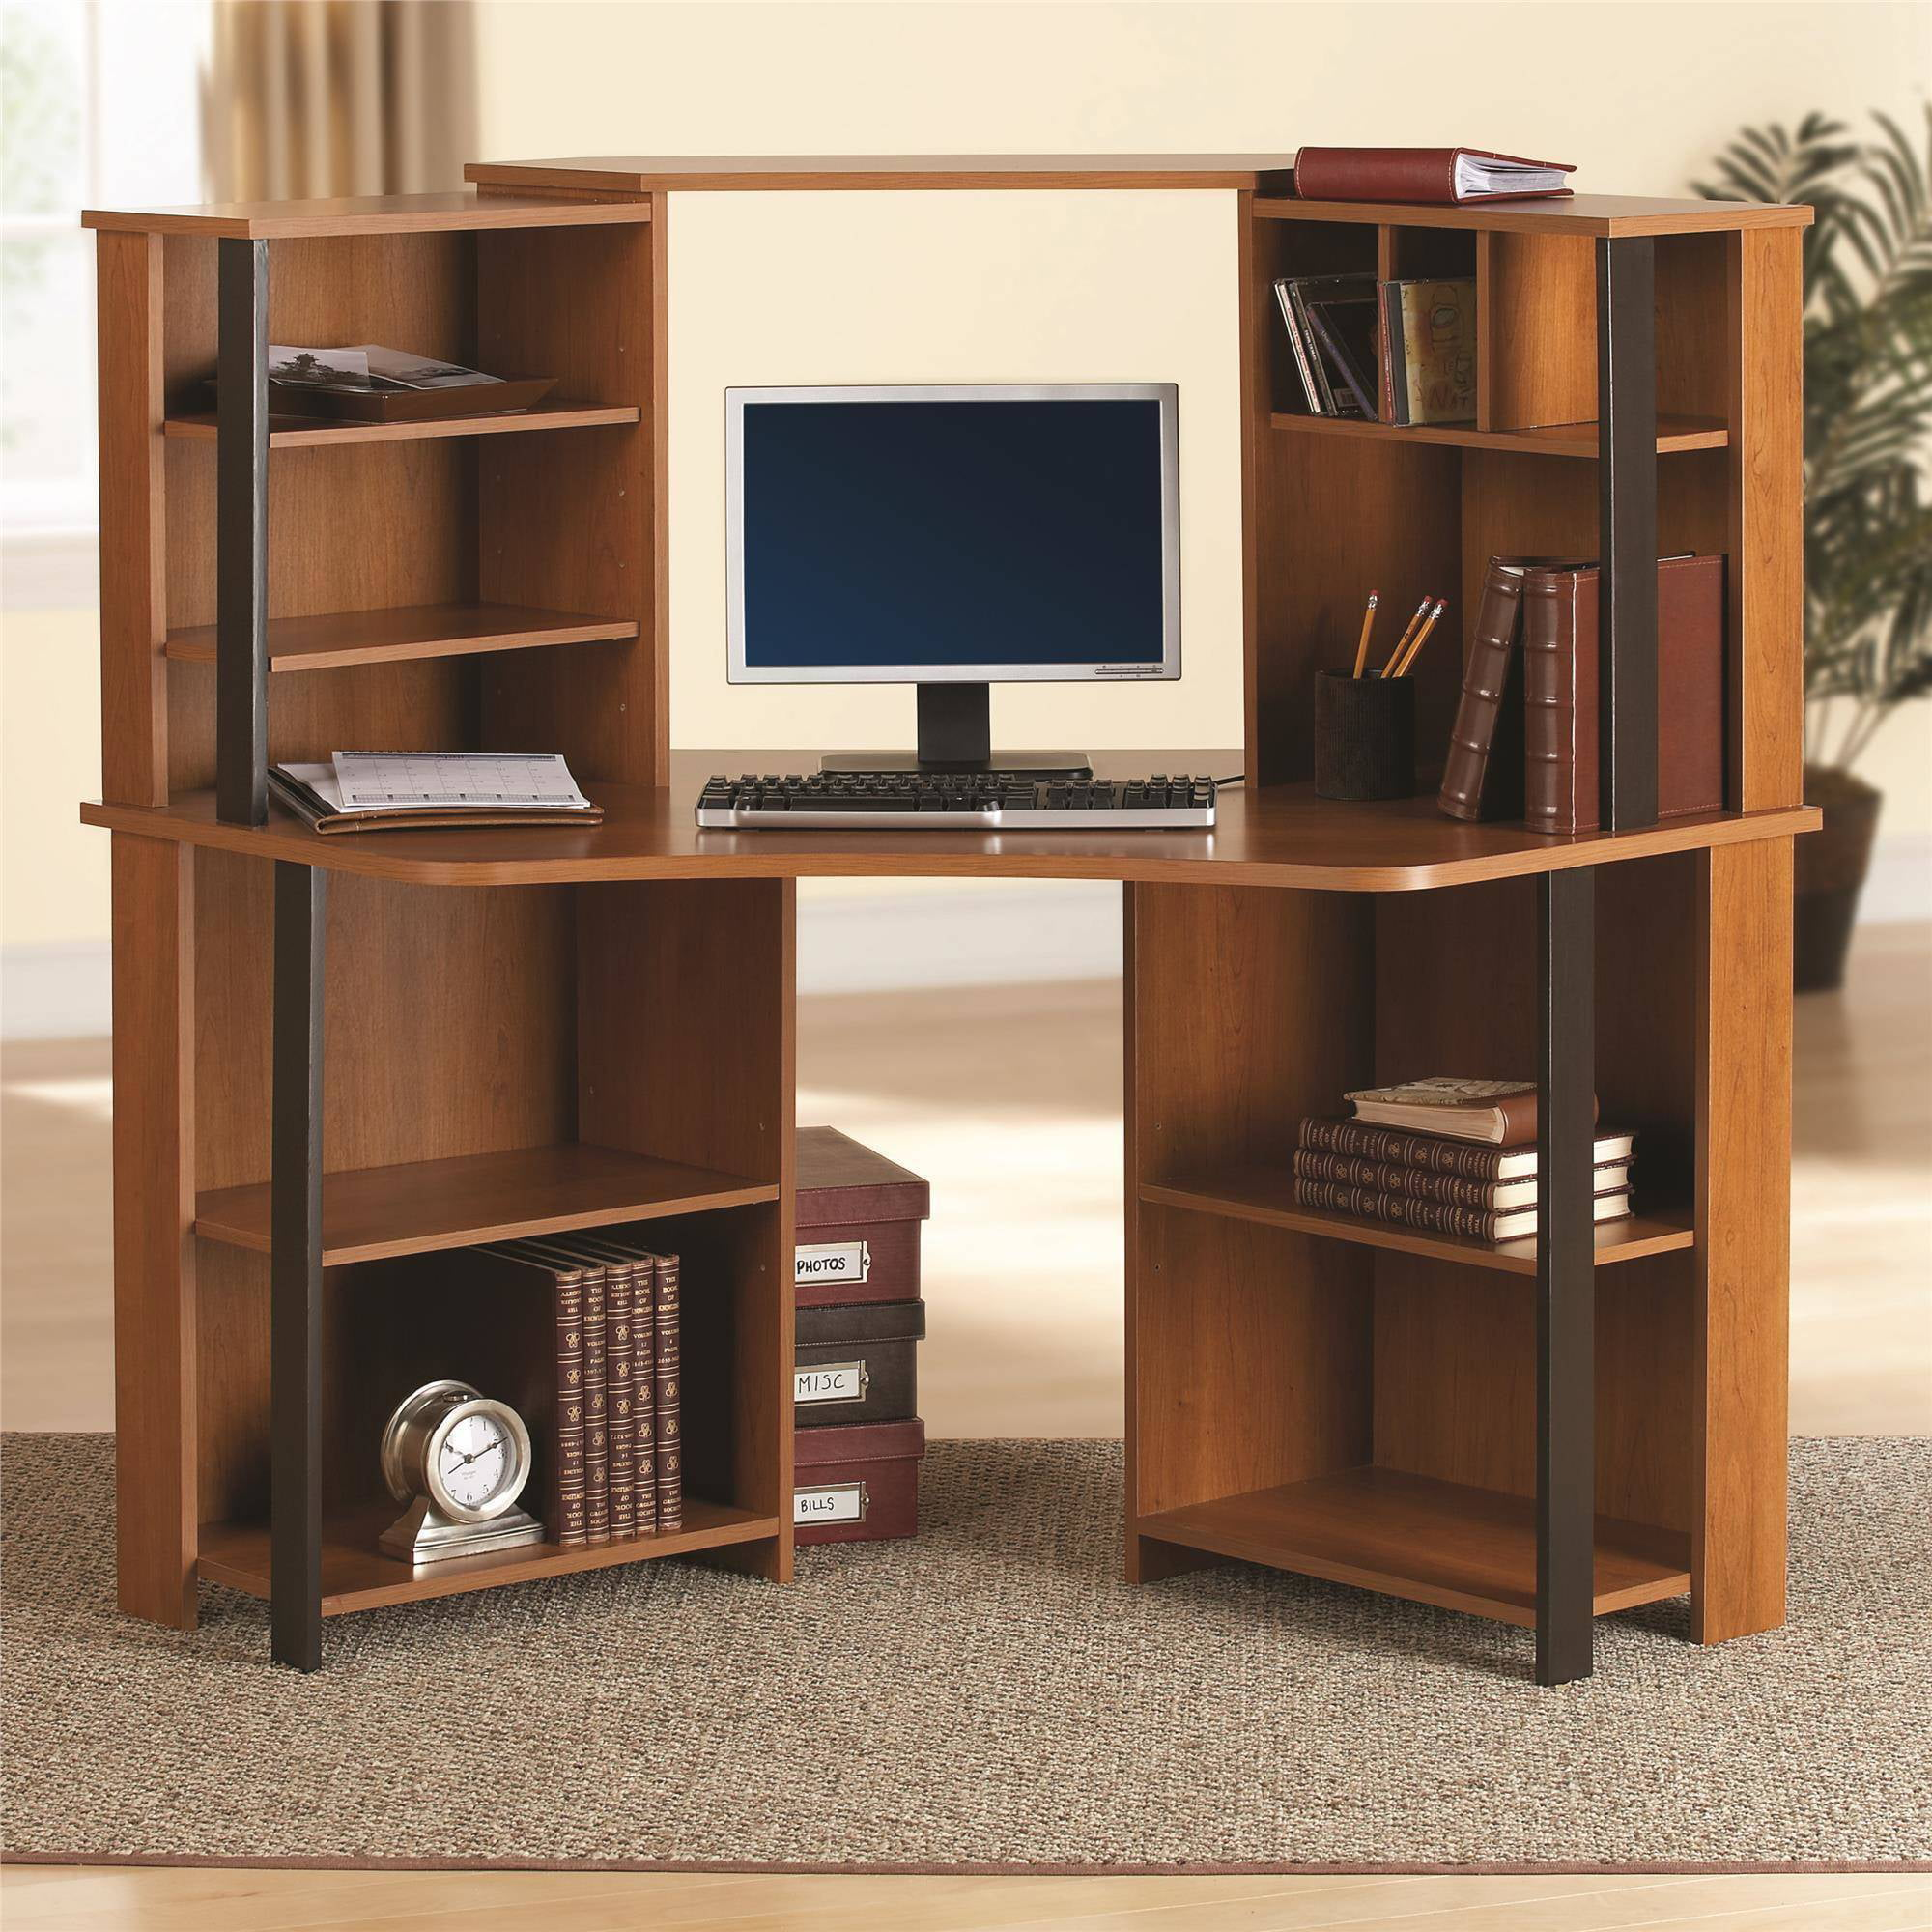 bookshelf wooden computer ikea l cabinet for and also desk corner drawers shaped hanging with